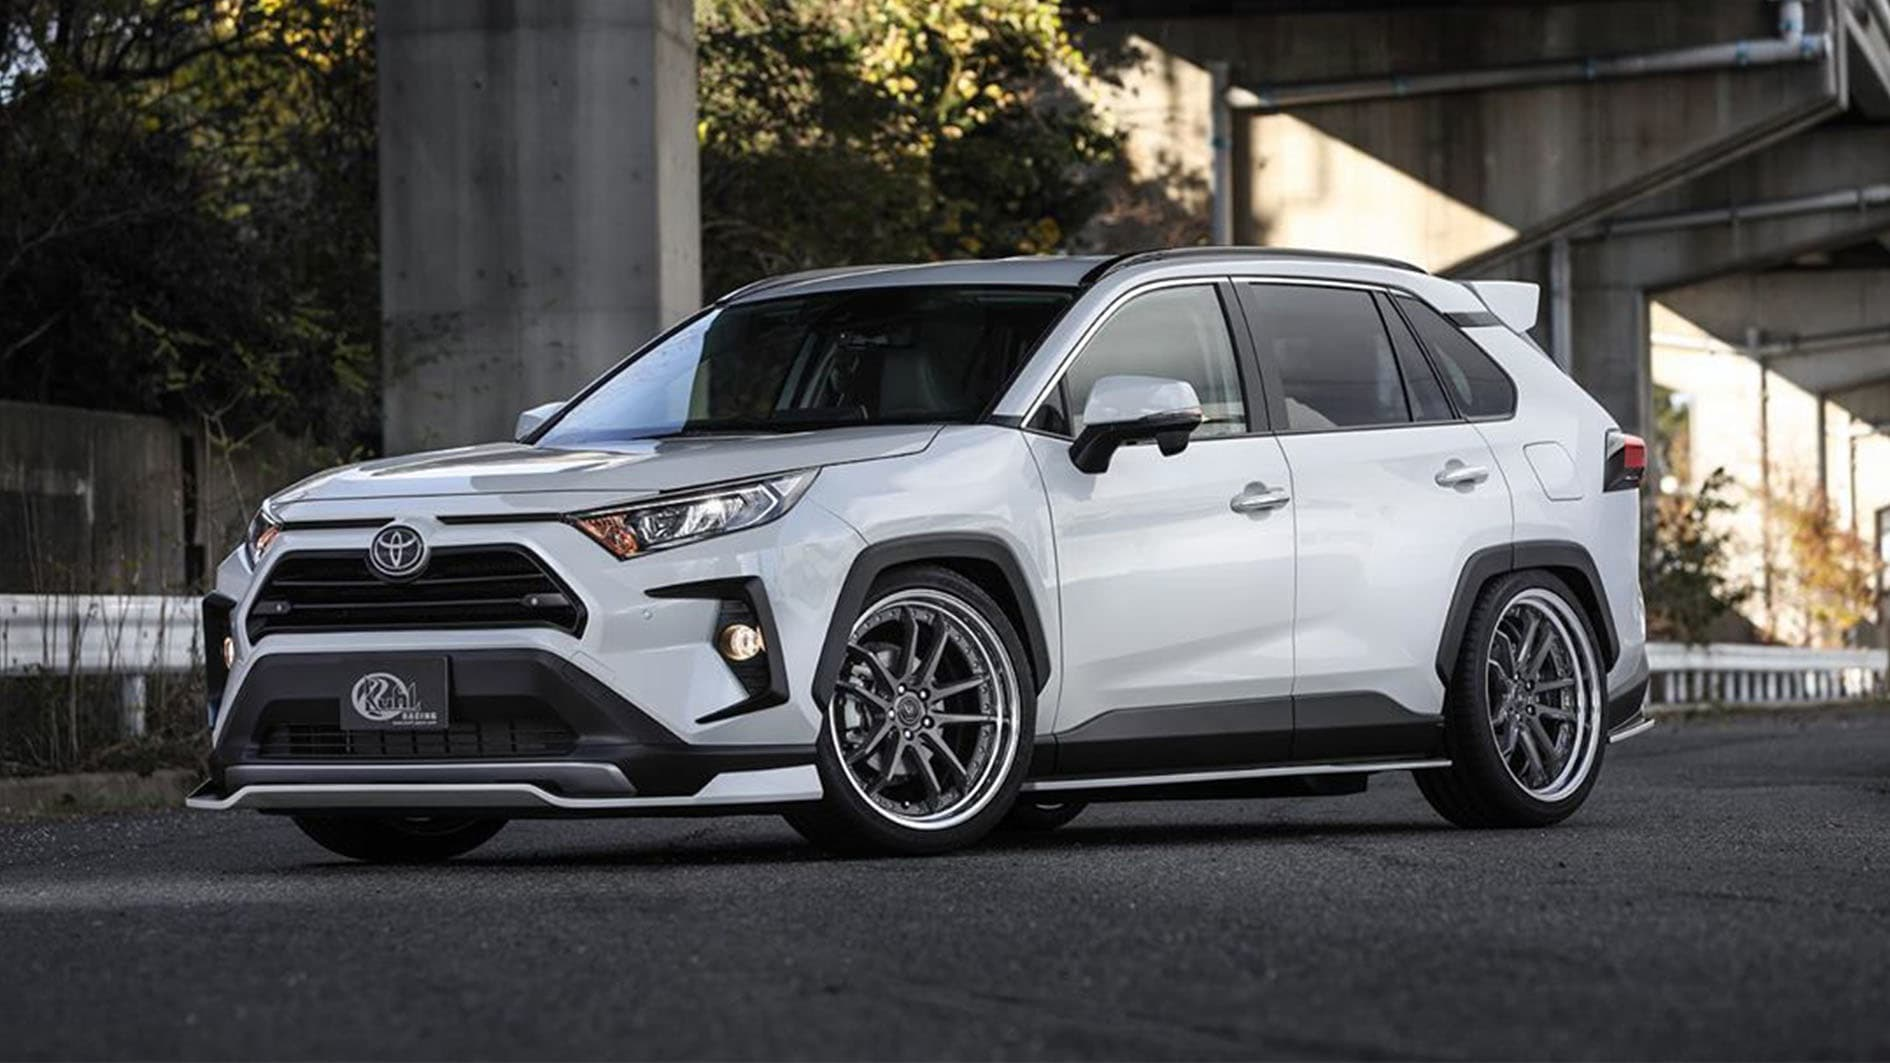 2020 Toyota Rav4 Kitted Up Like A Hot Hatch Caradvice